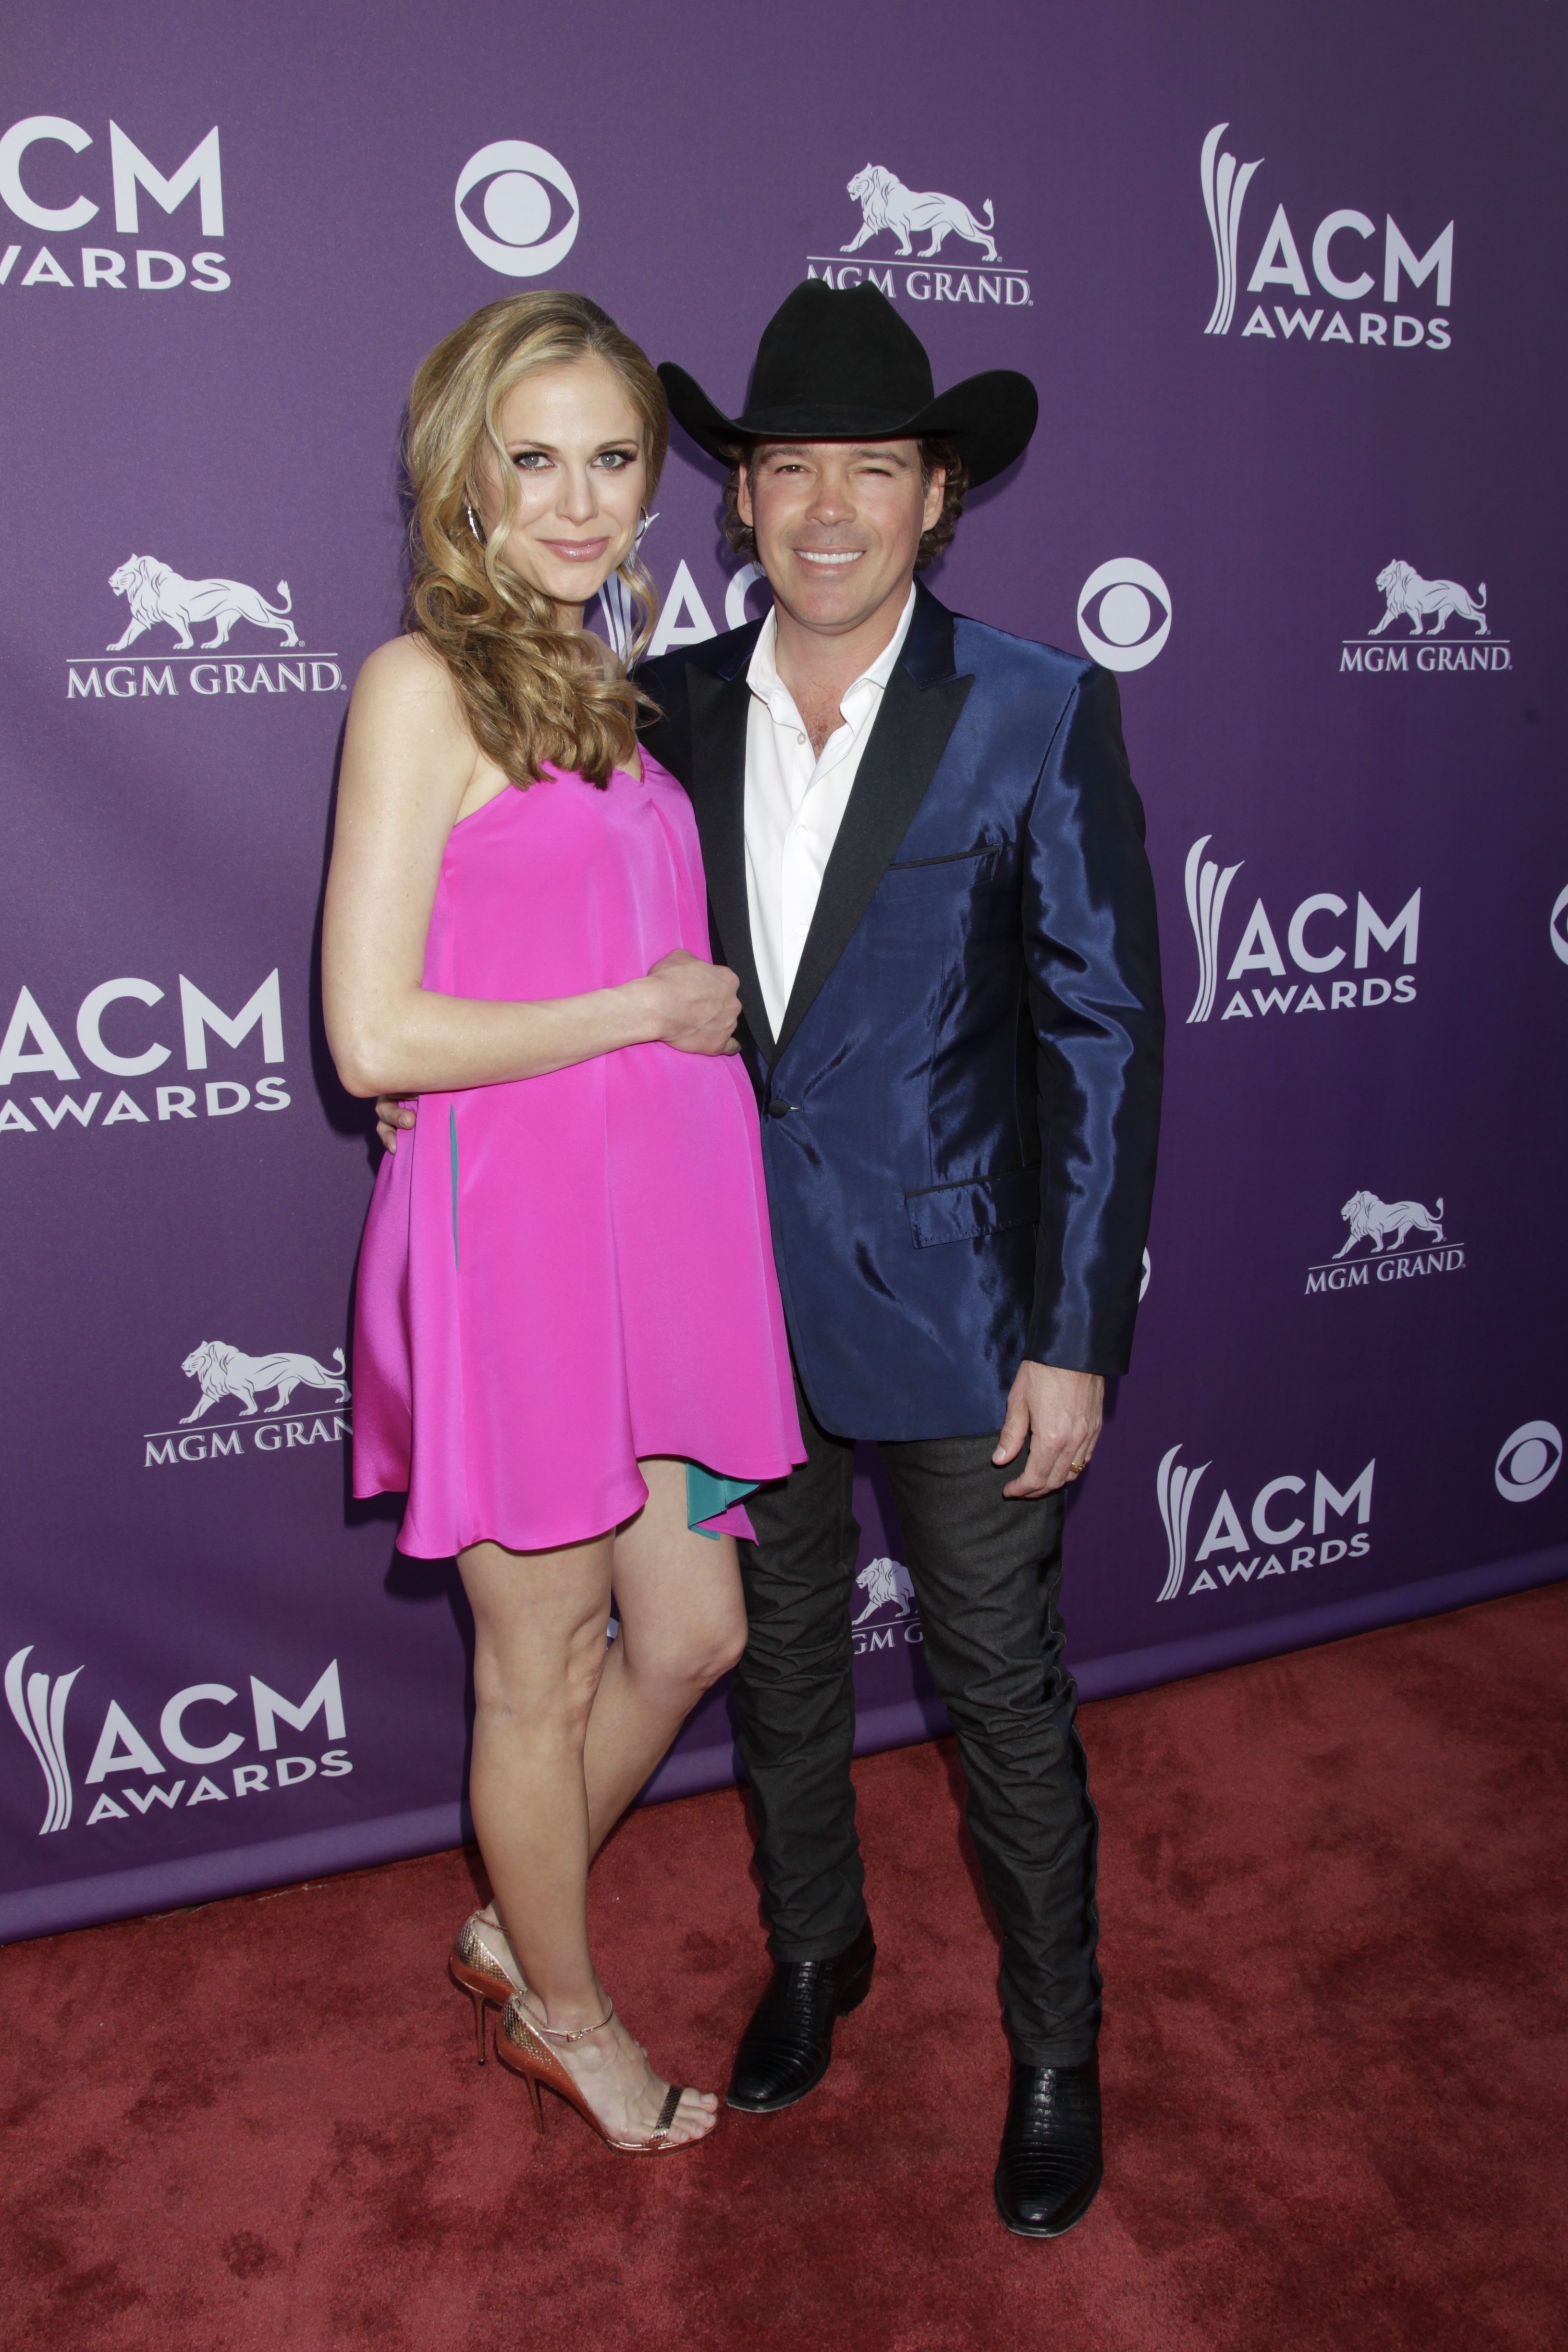 Jessica Craig and Clay Walker on the Red Carpet - 48th ACM Awards